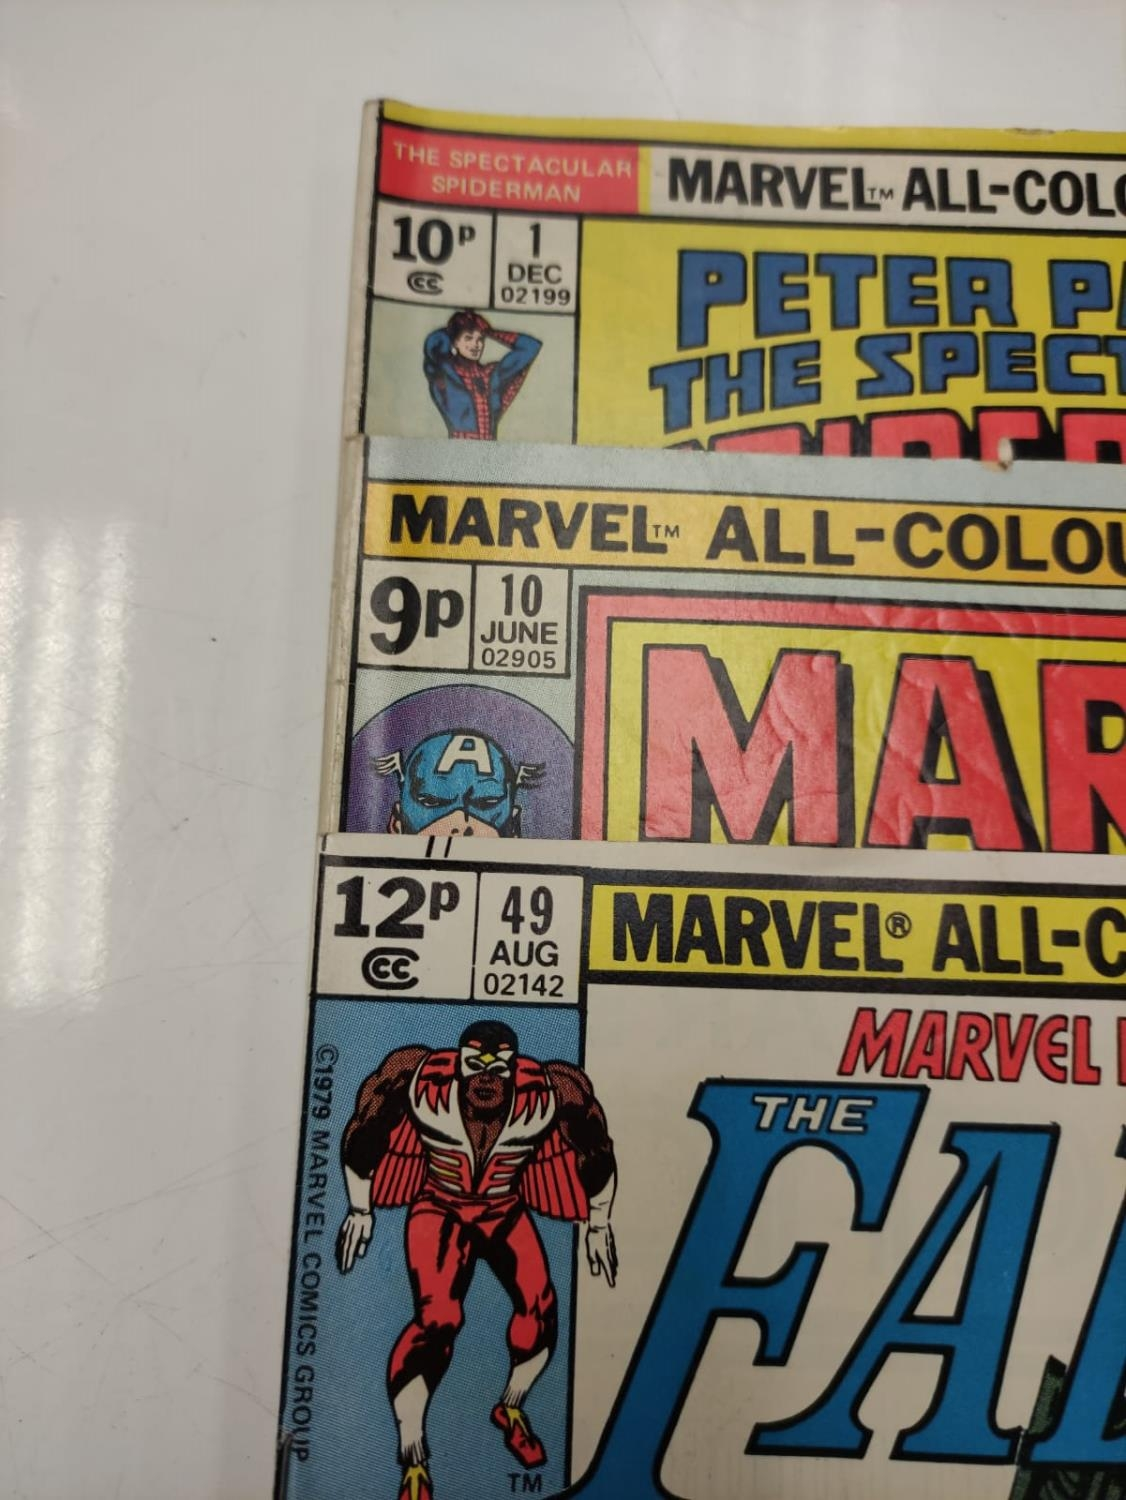 3 Eclectic Vintage Marvel Comics, including the rare 'Peter Parker, The Spectacular Spider-Man'. - Image 4 of 8